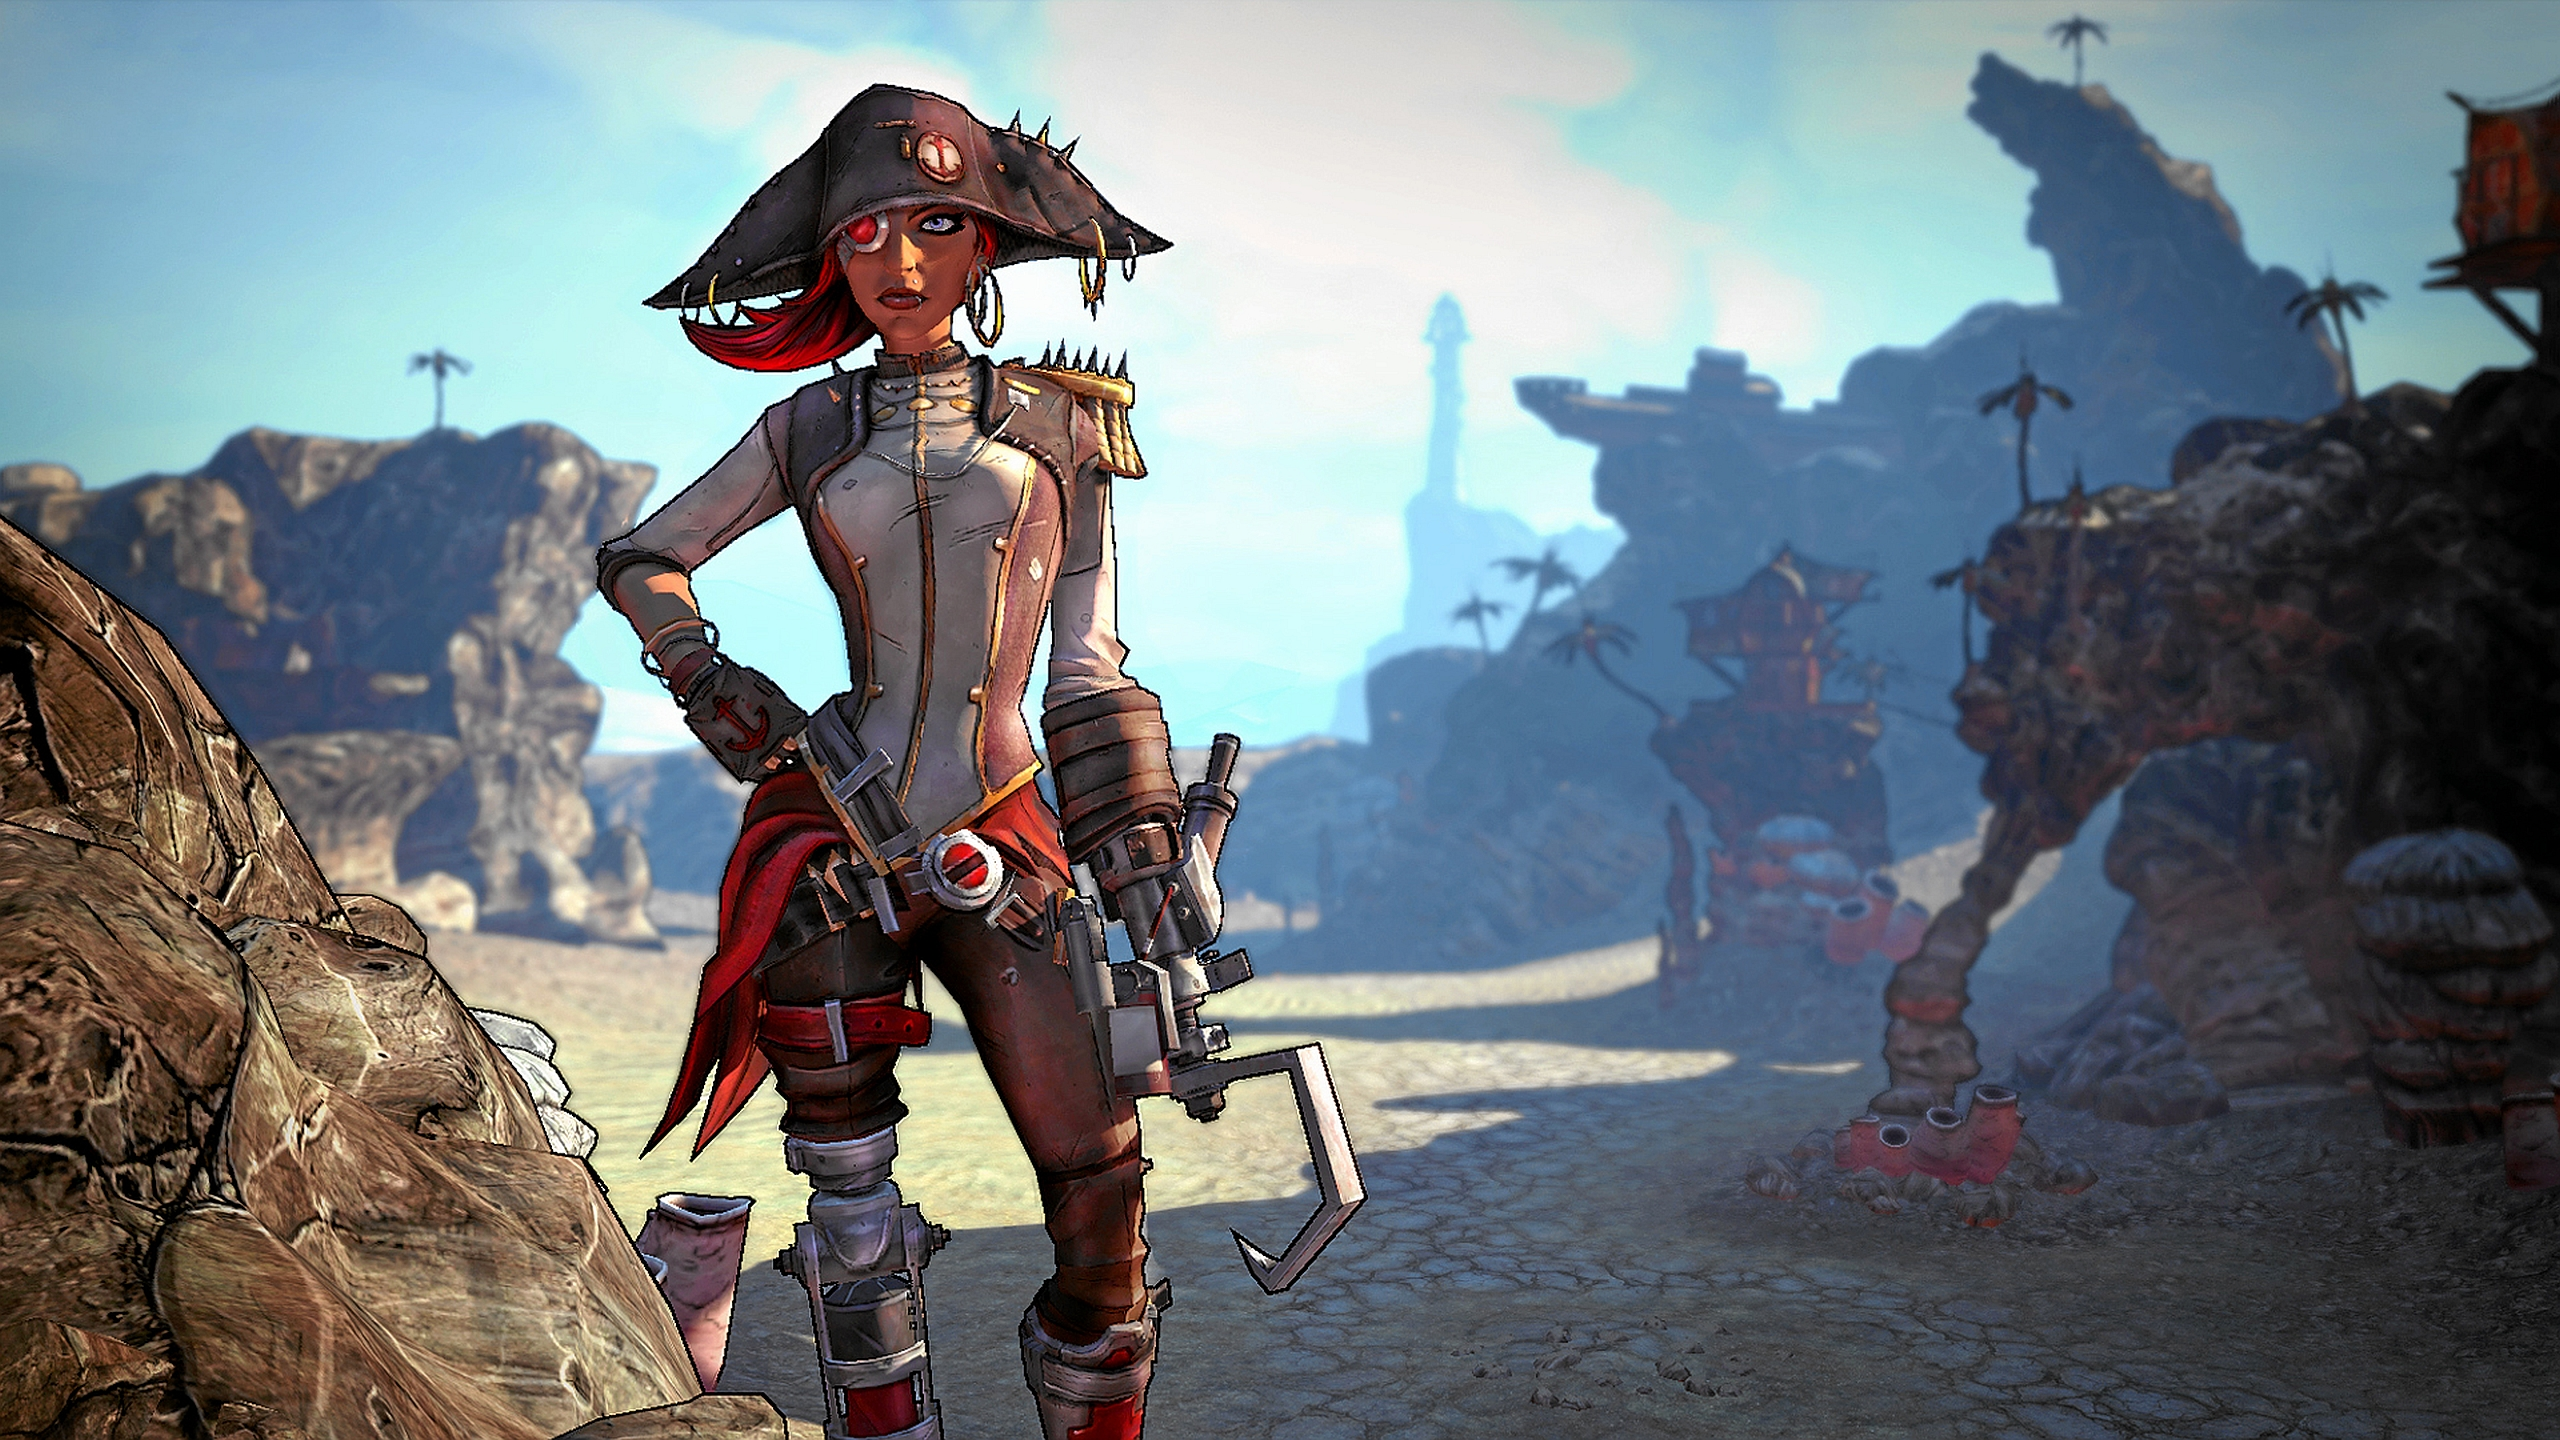 borderlands 2 amazing hd wallpapers - all hd wallpapers